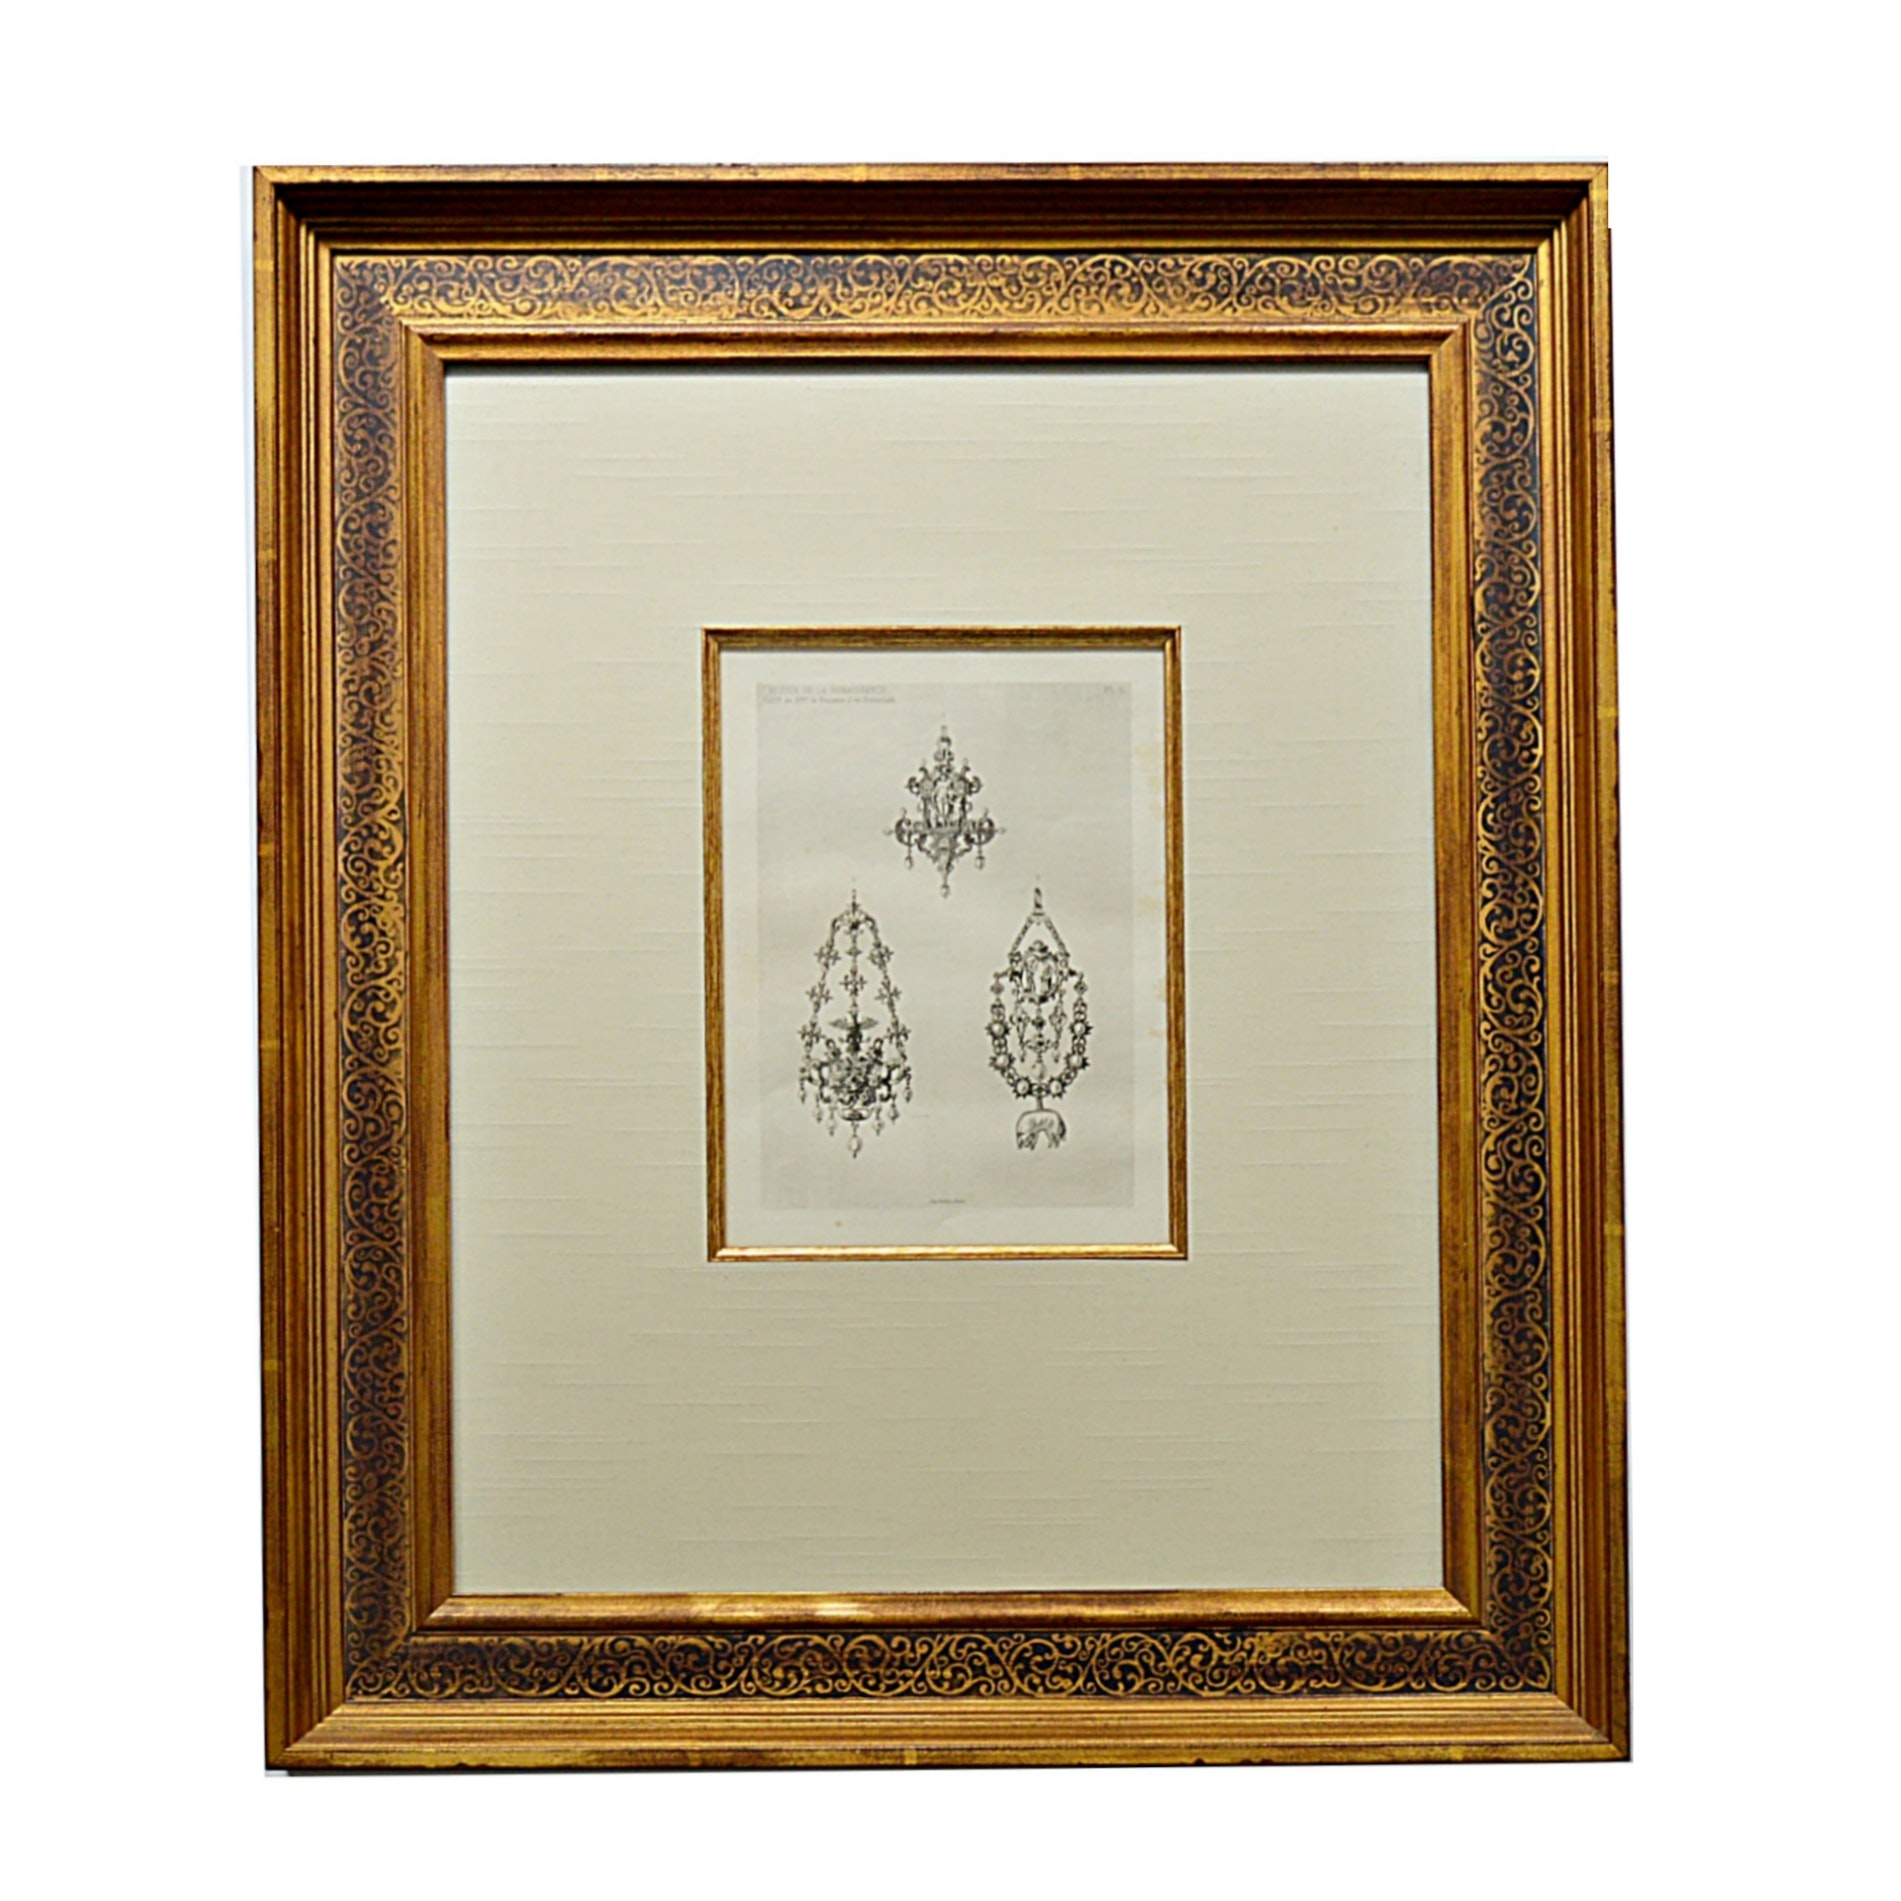 19th-Century Italian Rothschild Collection Jewelry Engraving